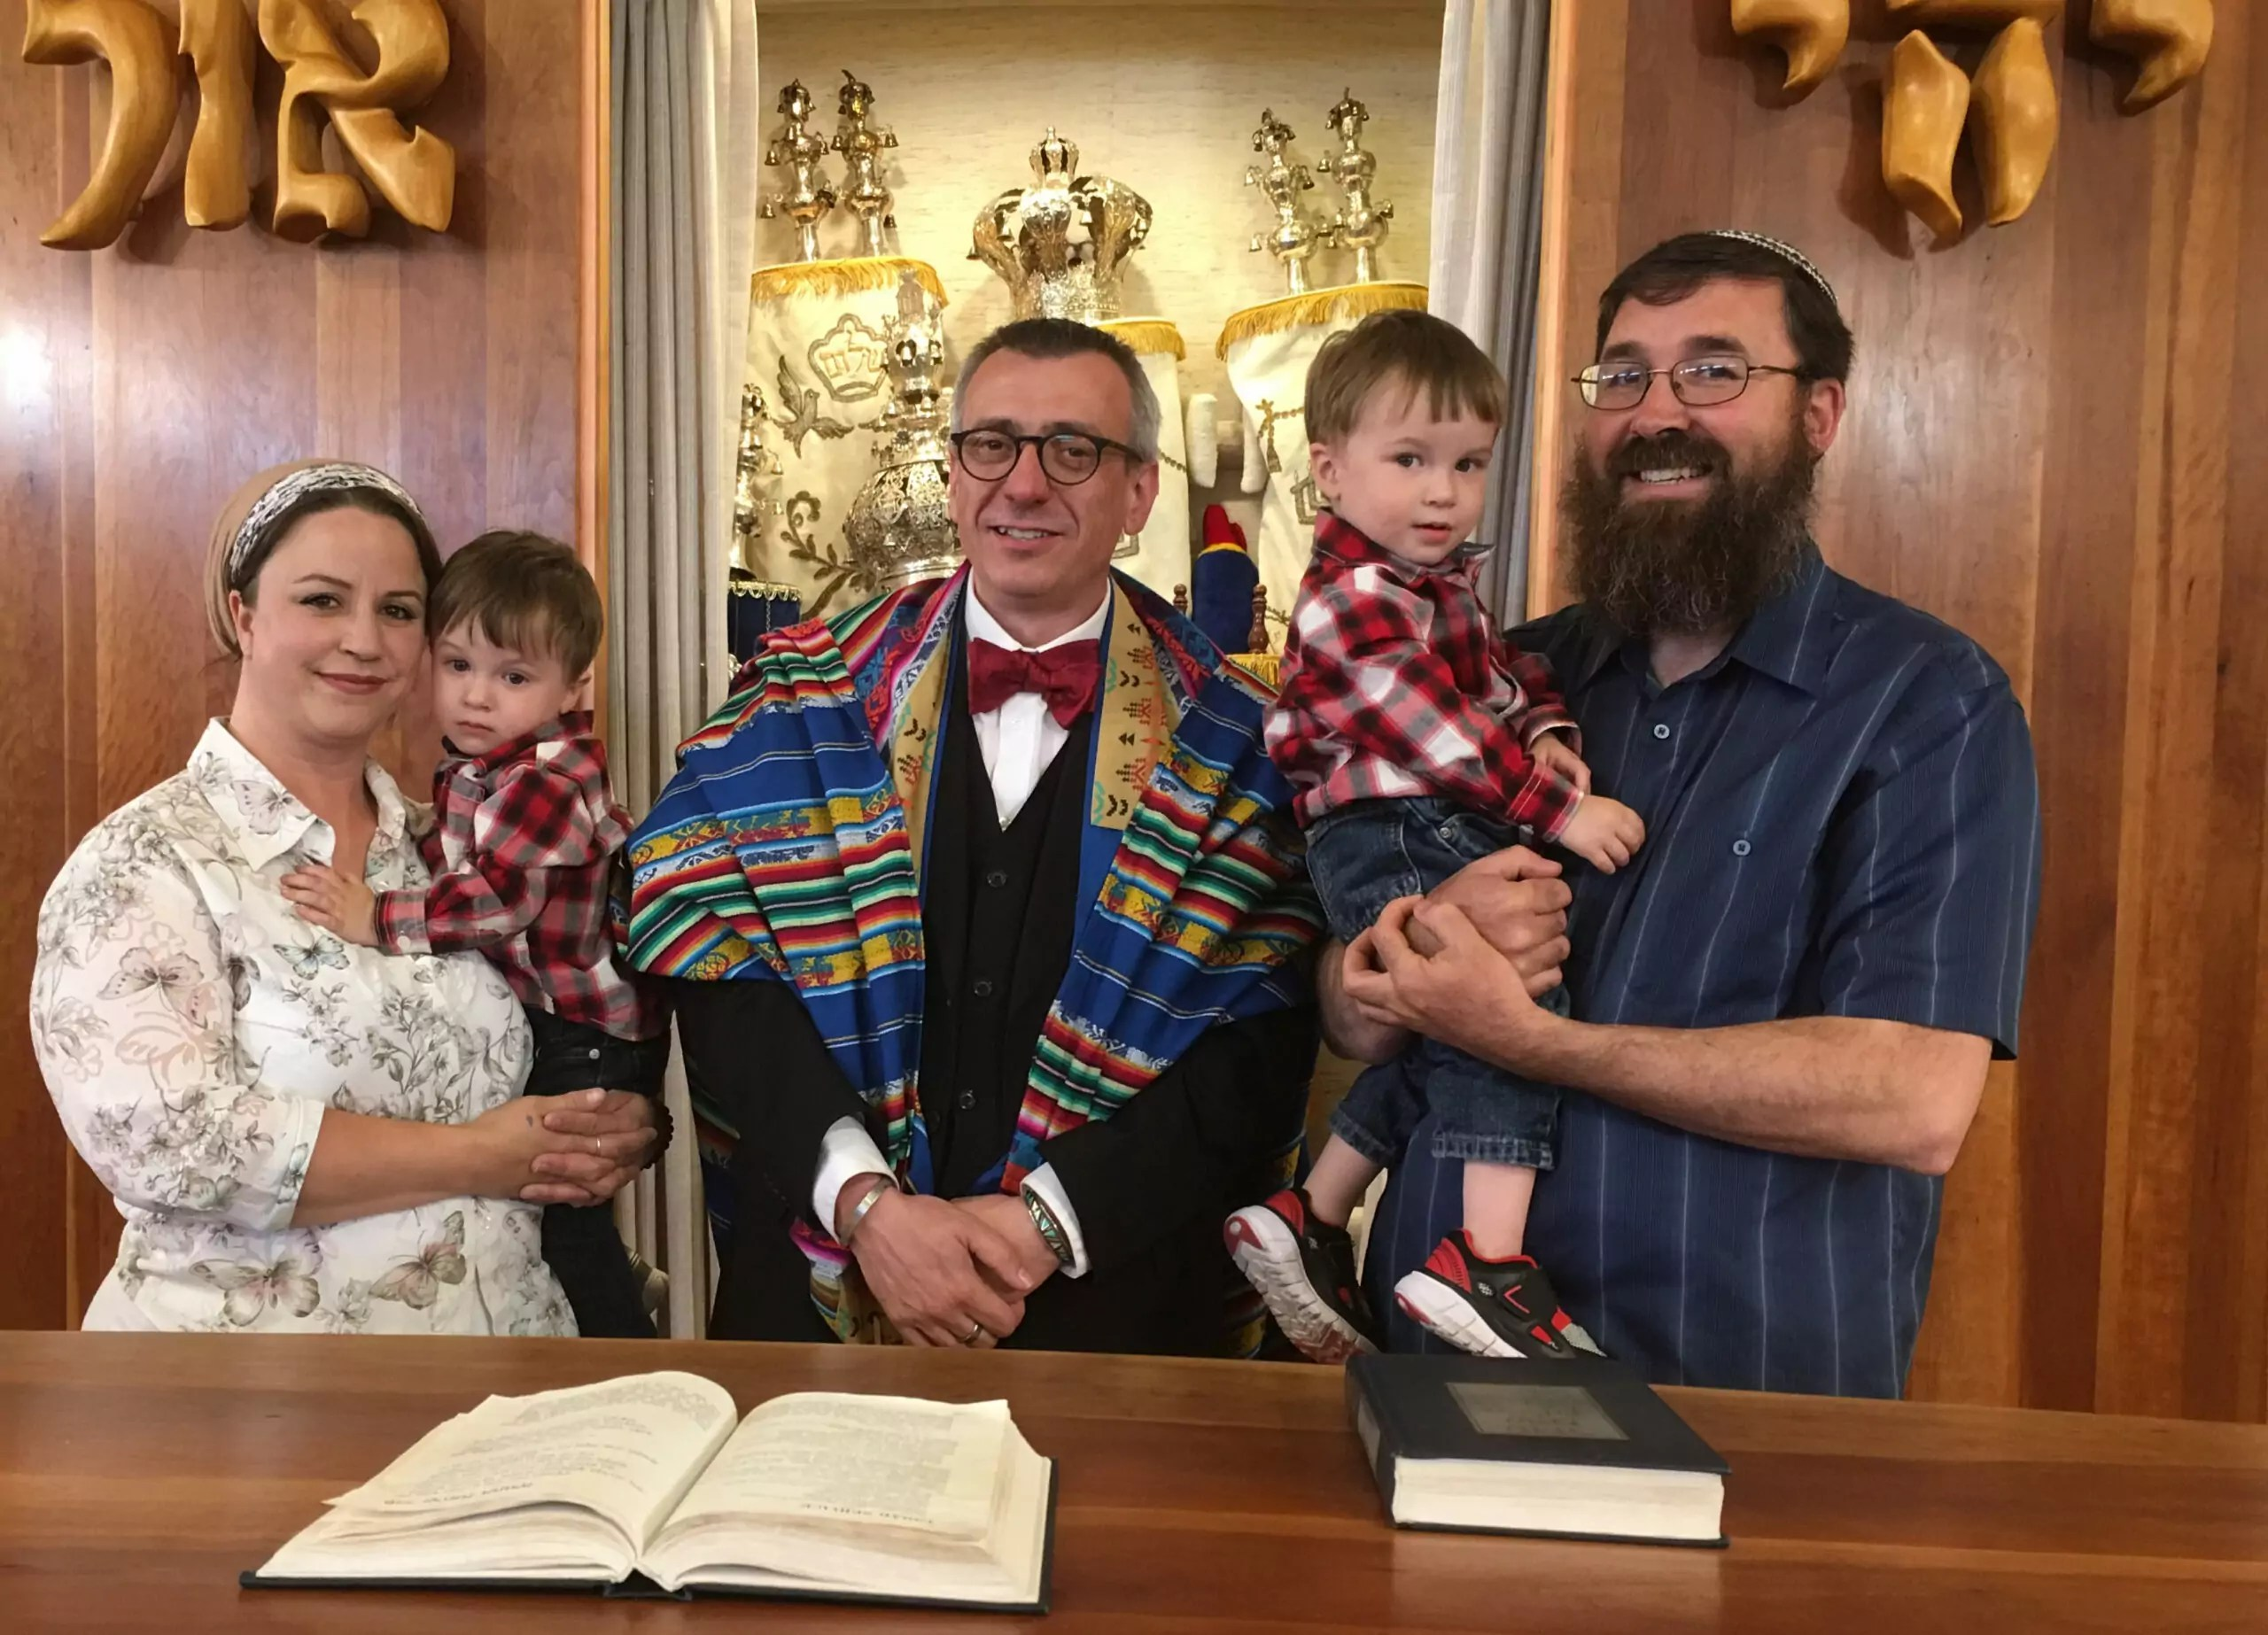 Two people hold their children while smiling, while a rabbi stands in the middle.